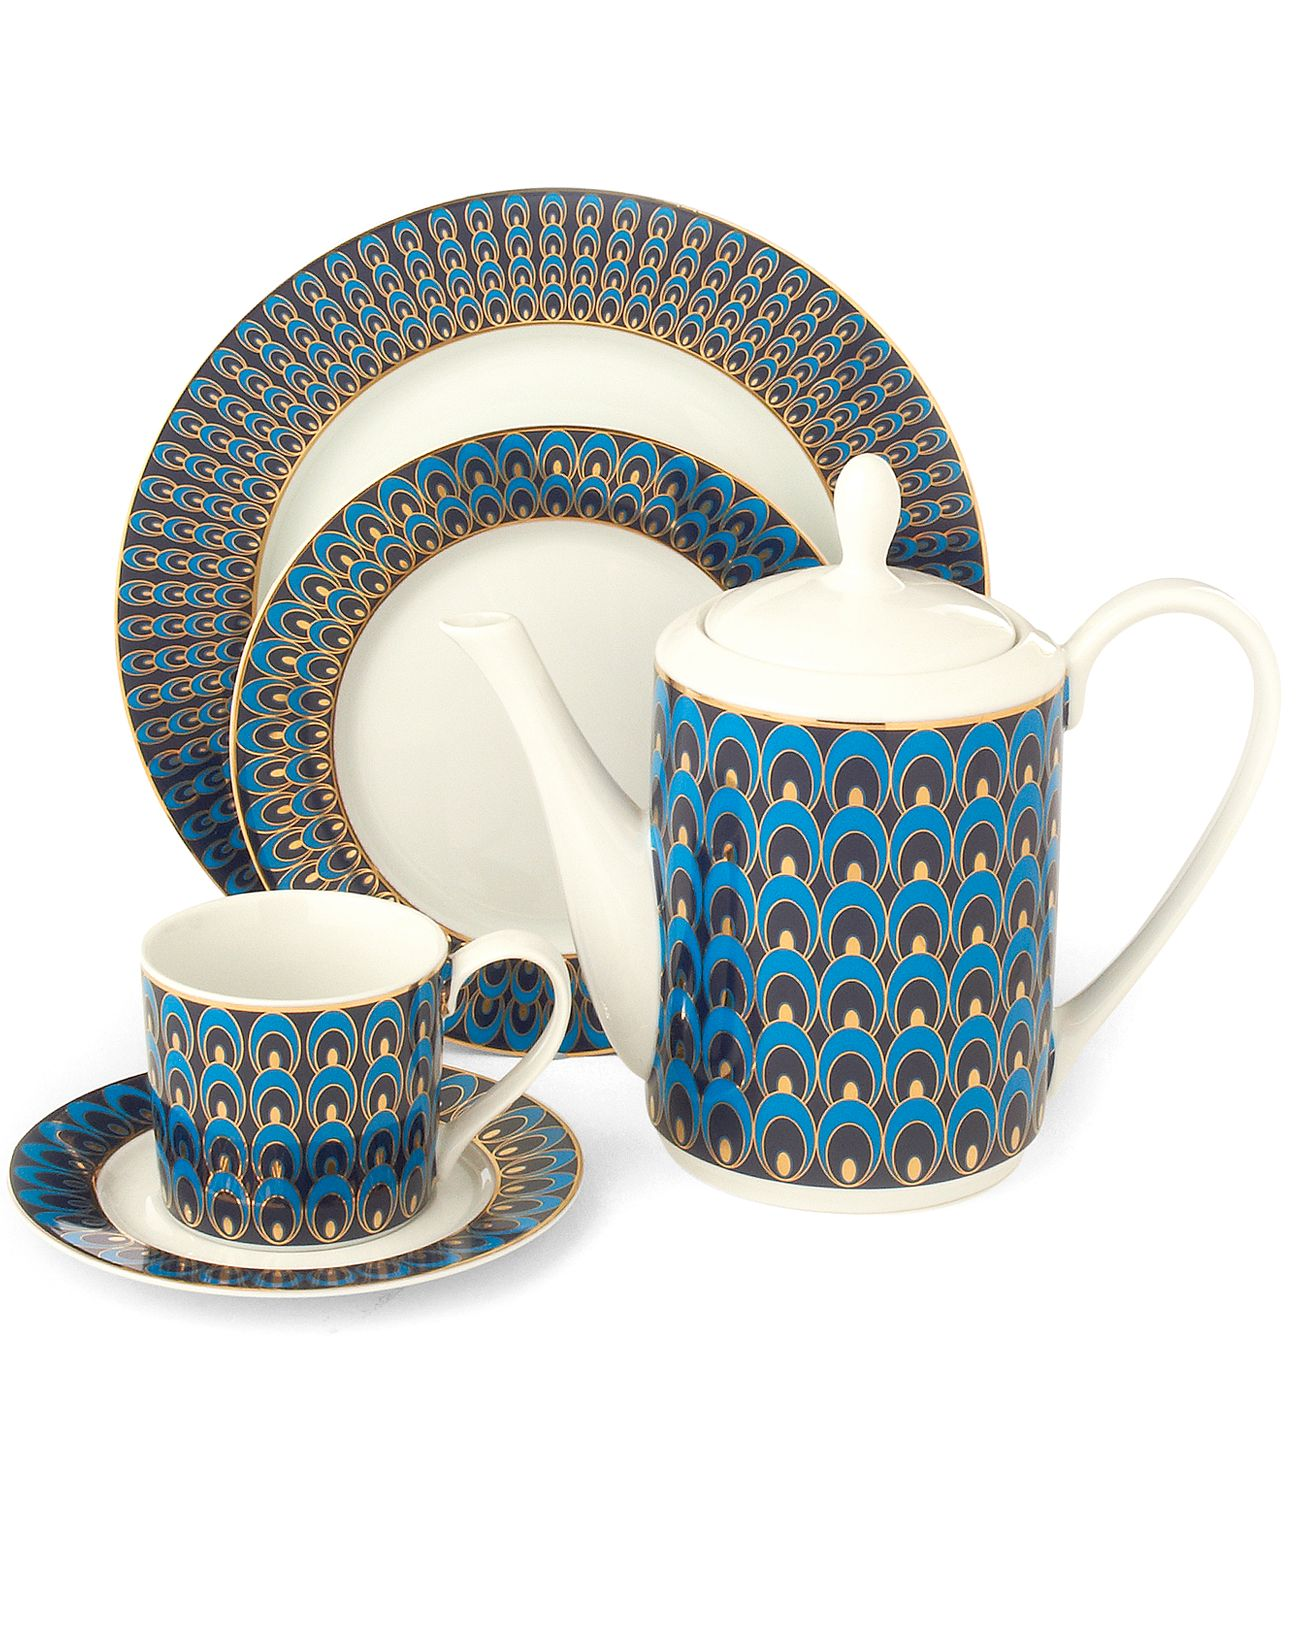 Peacock dinnerware